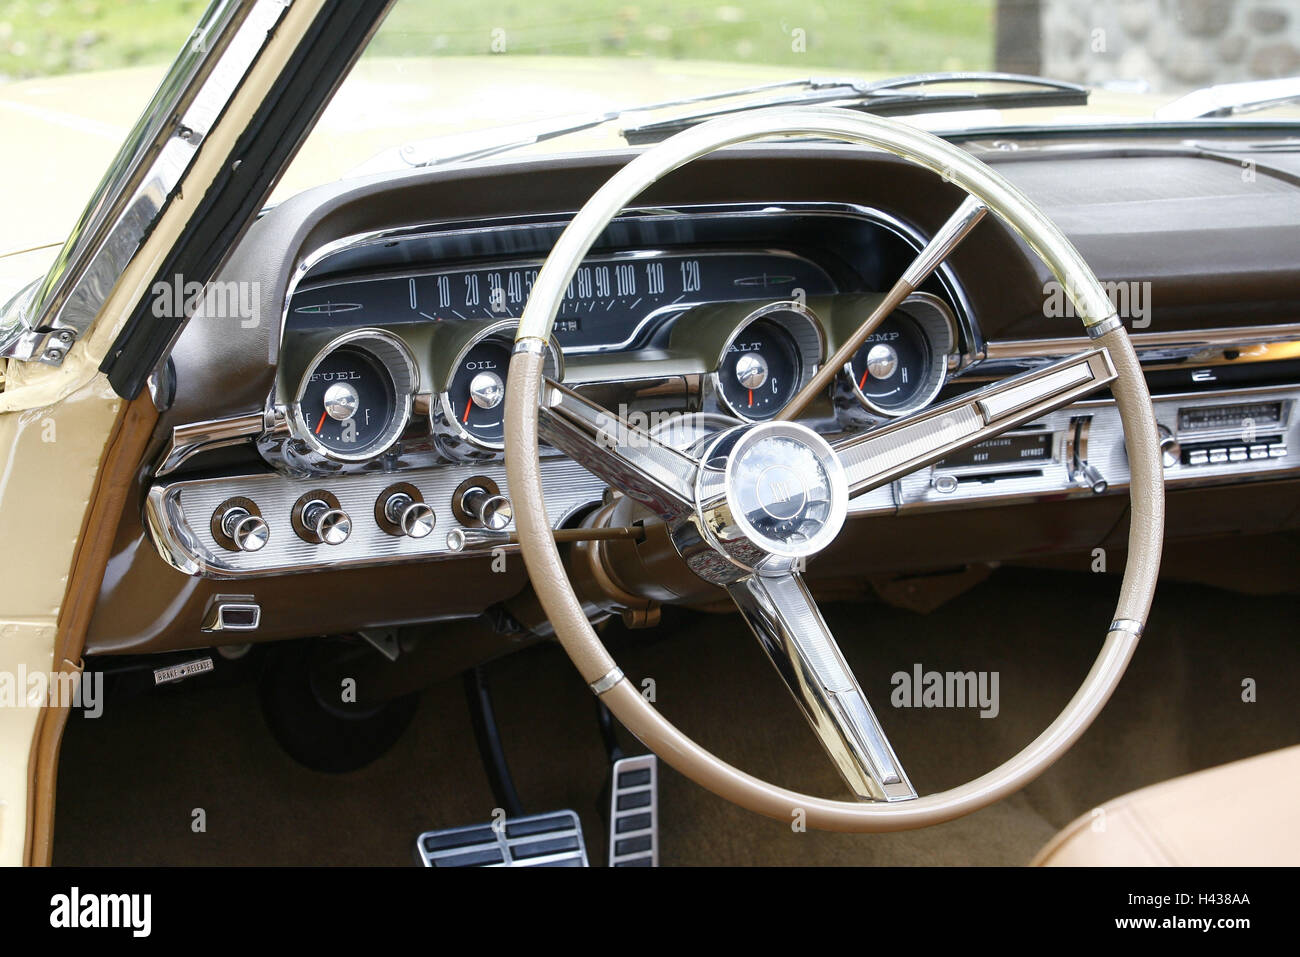 Mercury, old-timer, in American manner, cabriolet, cockpit, - Stock Image